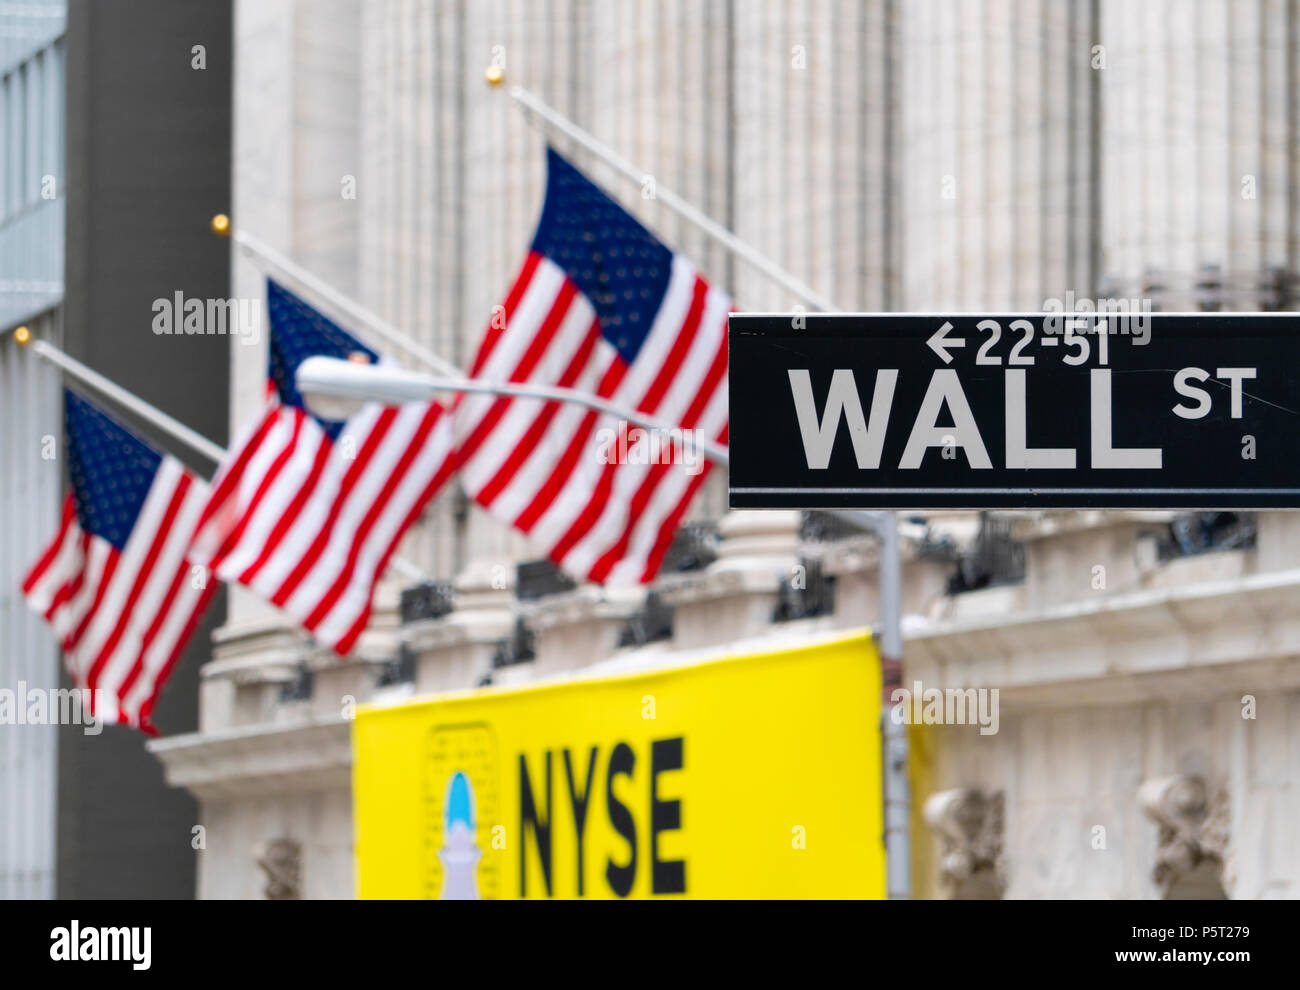 Wall Street sign près de New York Stock Exchange Photo Stock